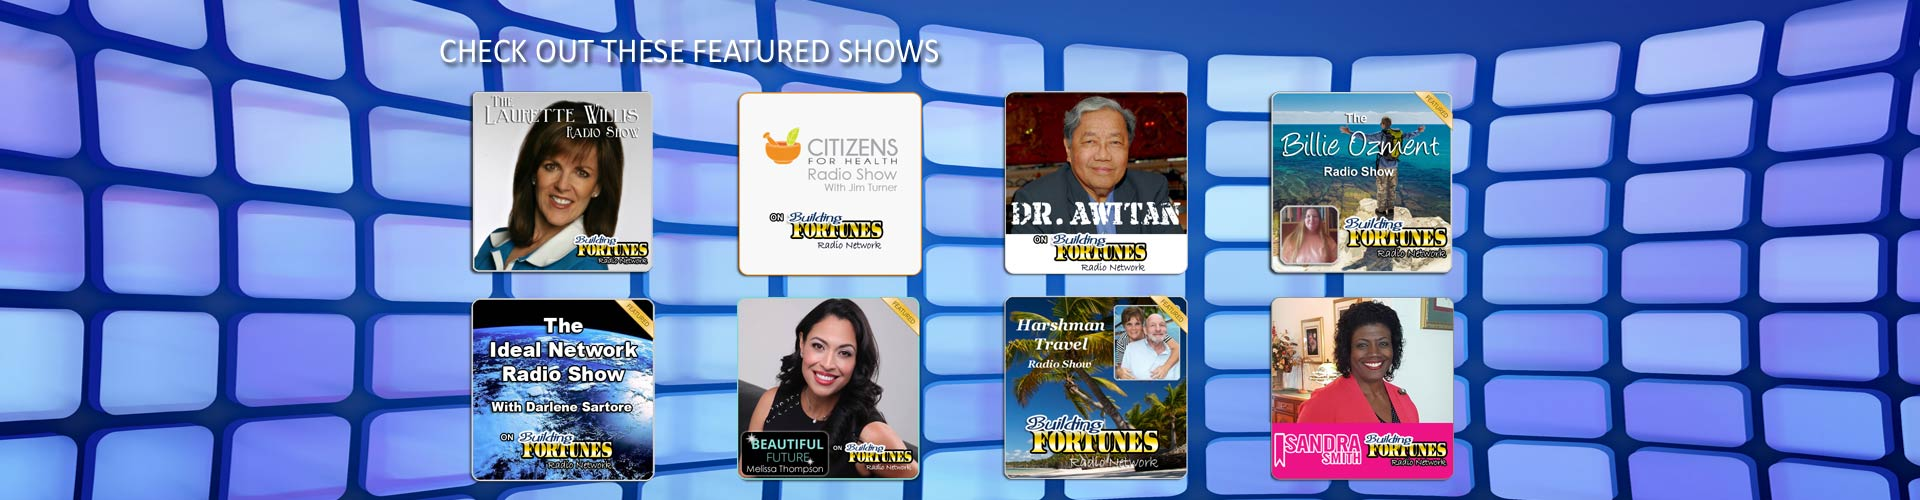 Check Out These Featured Shows on Building Fortunes Radio Network